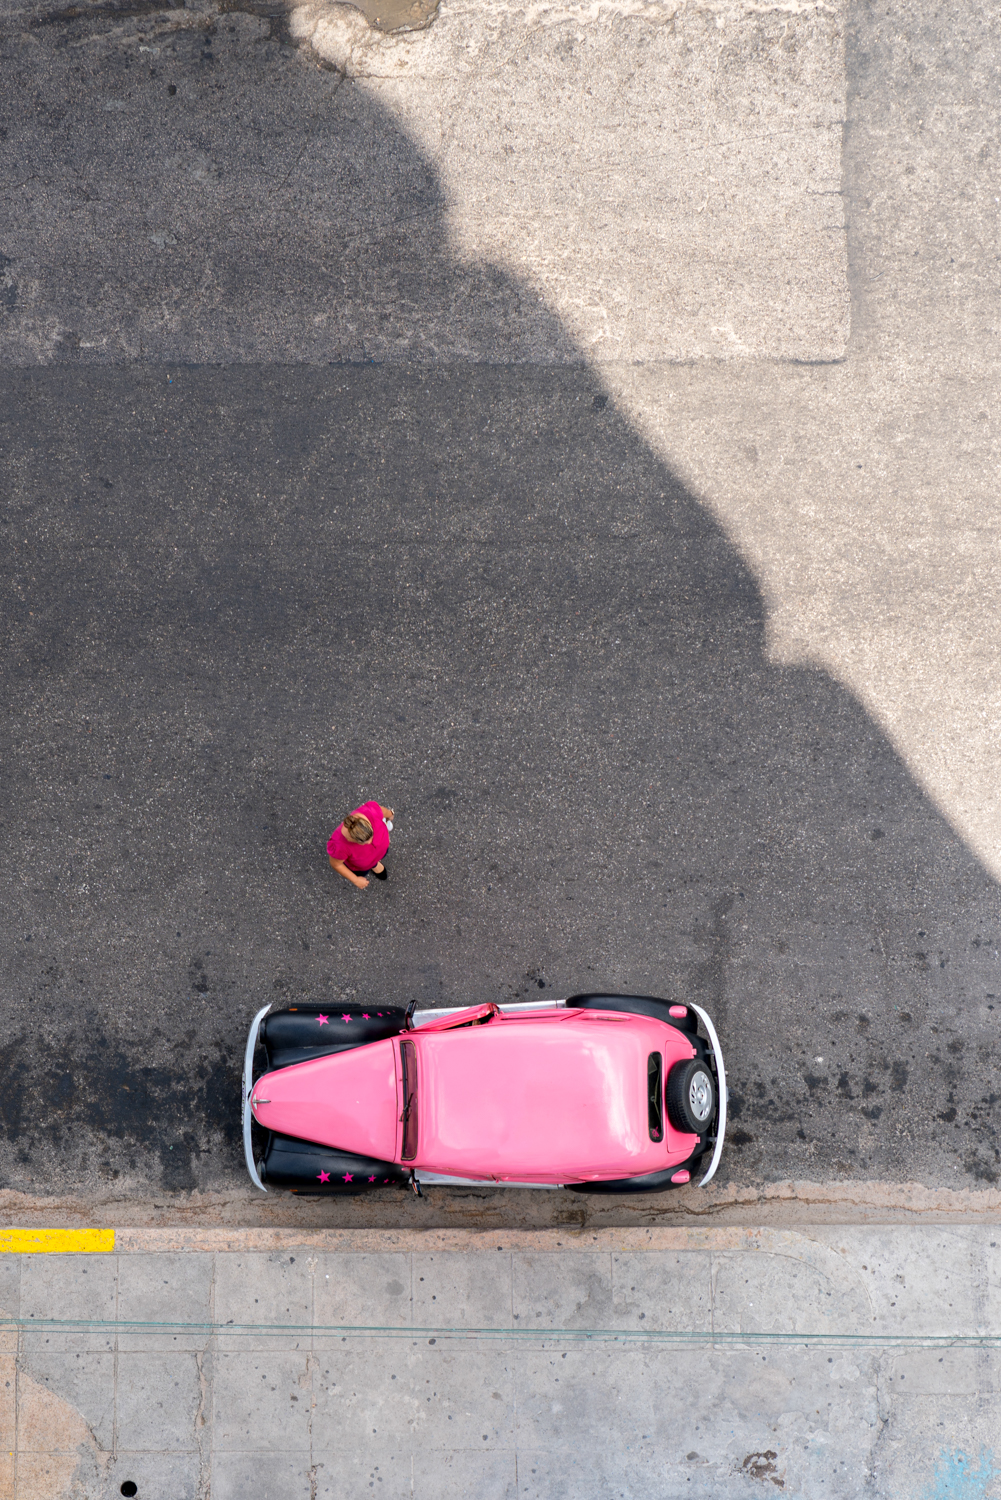 Looking straight down from our balcony, I caught this woman walking to her pink car.  Sony A7RII, Zeiss Batis 85mm f/1.8 (iso50, f/4, 1/200s)